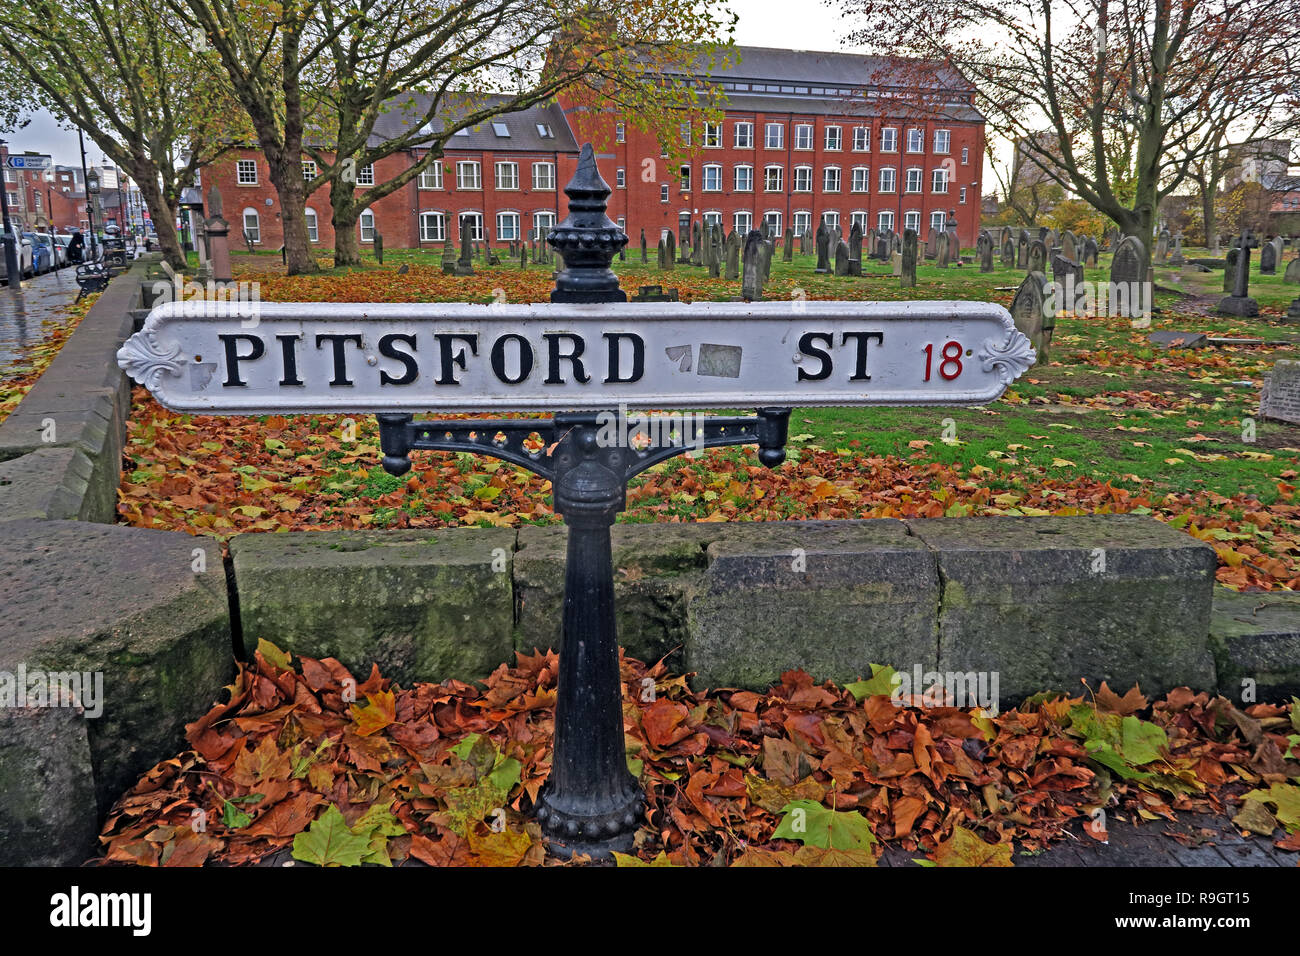 GoTonySmith,@HotpixUK,HotpixUK,England,UK,history,Sign,Cemetery,West Midland,city,centre,Brookfields Cemetery,Mint Cemetery,Hockley,catacomb,autumn,fall,The Friends of Key Hill and Warstone Lane Cemeteries,John Baskerville,Harry Gem,Clement Mansfield Ingleby,John Postgate